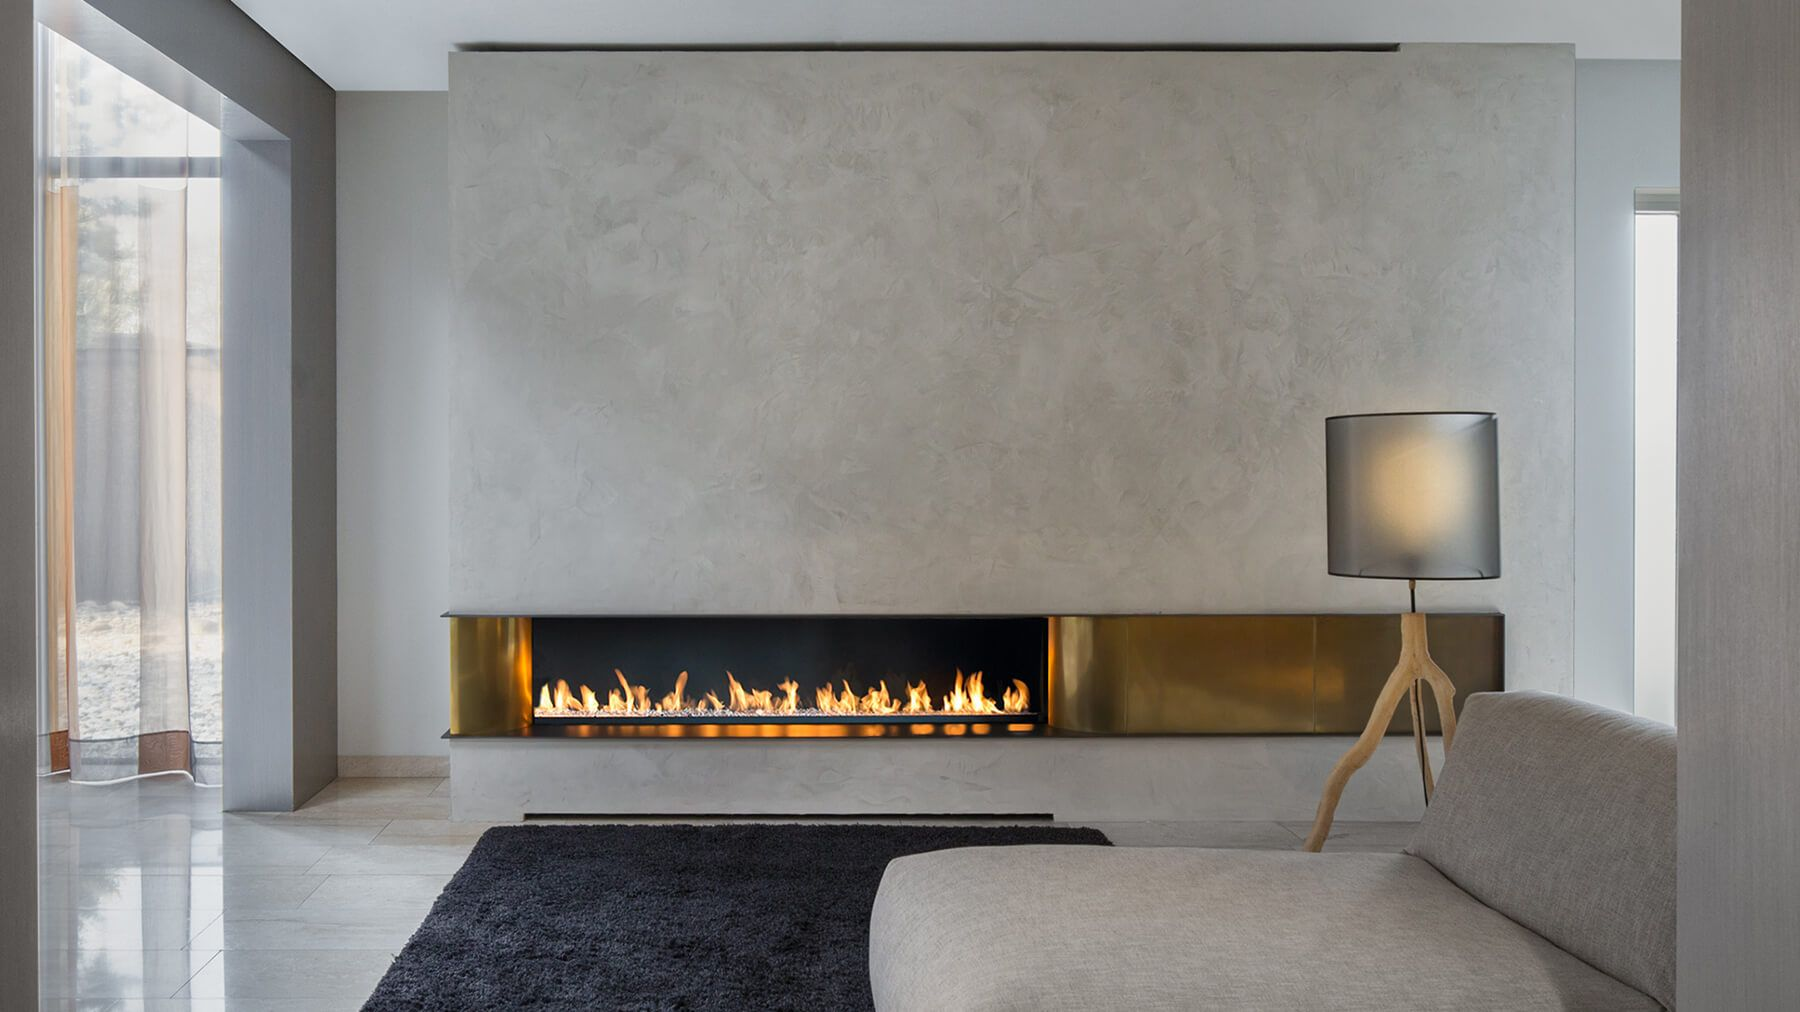 Amazing Fireplaces 20 Of The Most Amazing Modern Fireplace Ideas Gas